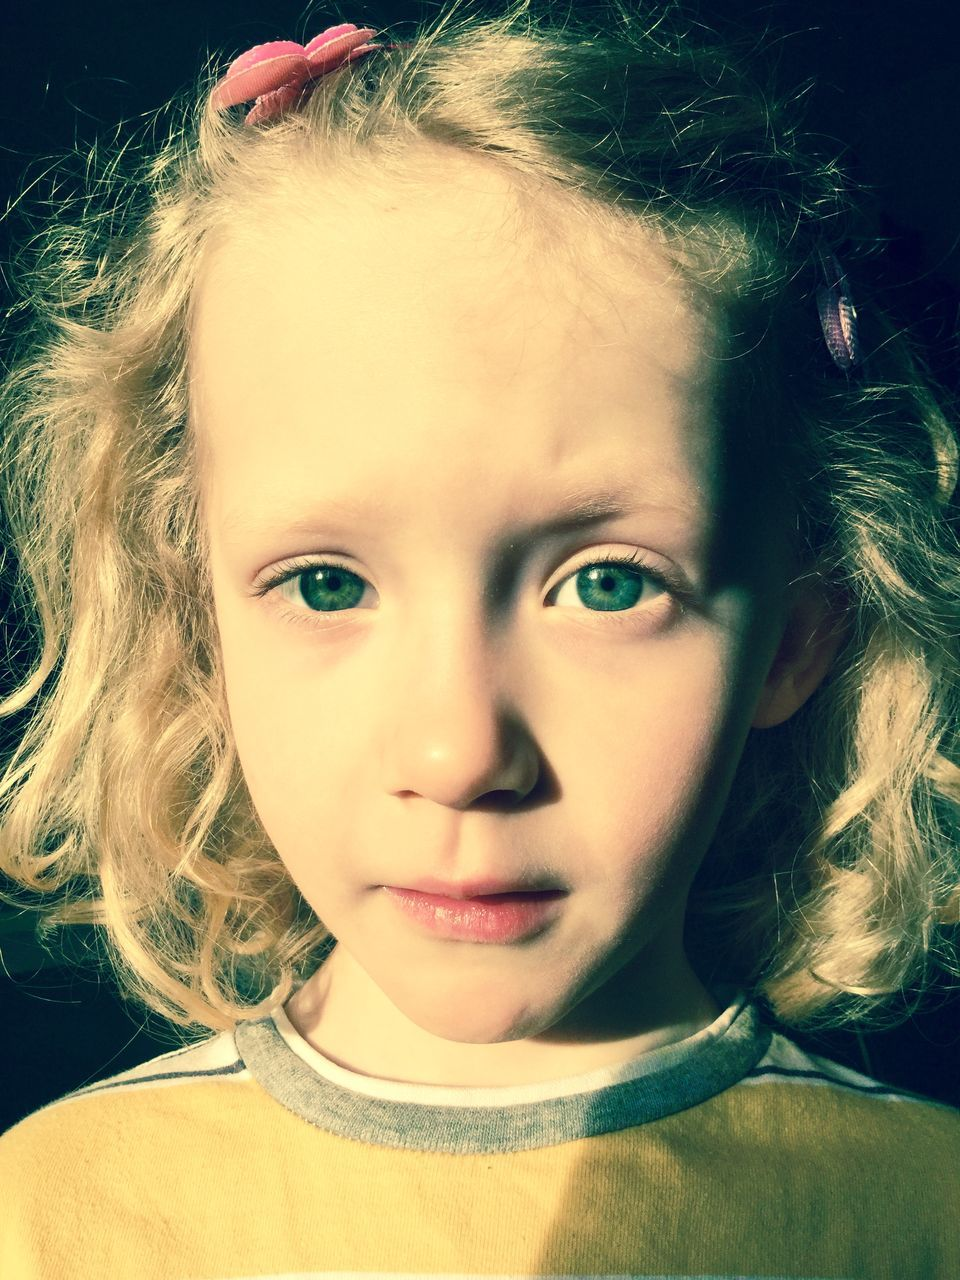 Portrait Of Little Girl With Green Eyes